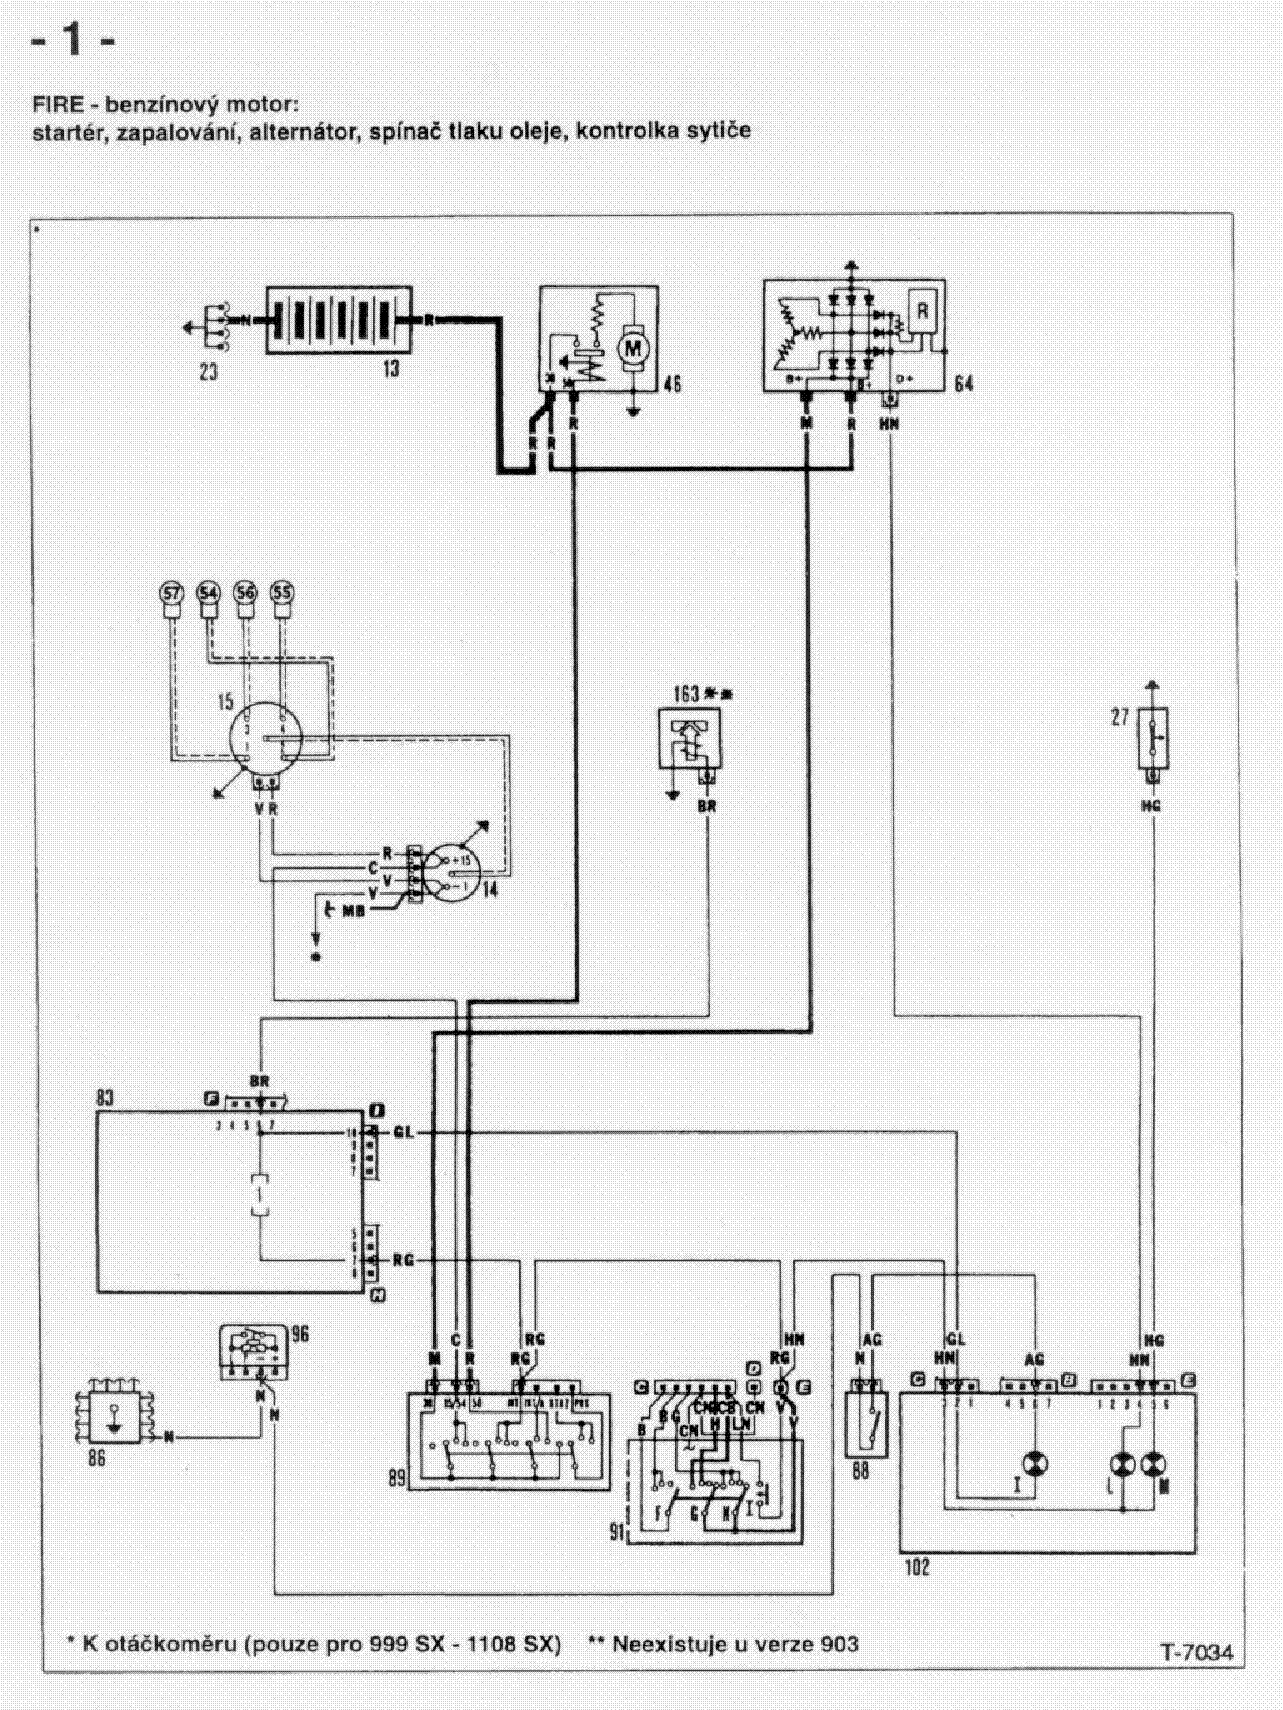 fiat_uno_wiring_diagram.pdf_1 fiat uno wiring diagram service manual download, schematics fiat uno wiring diagram pdf at soozxer.org